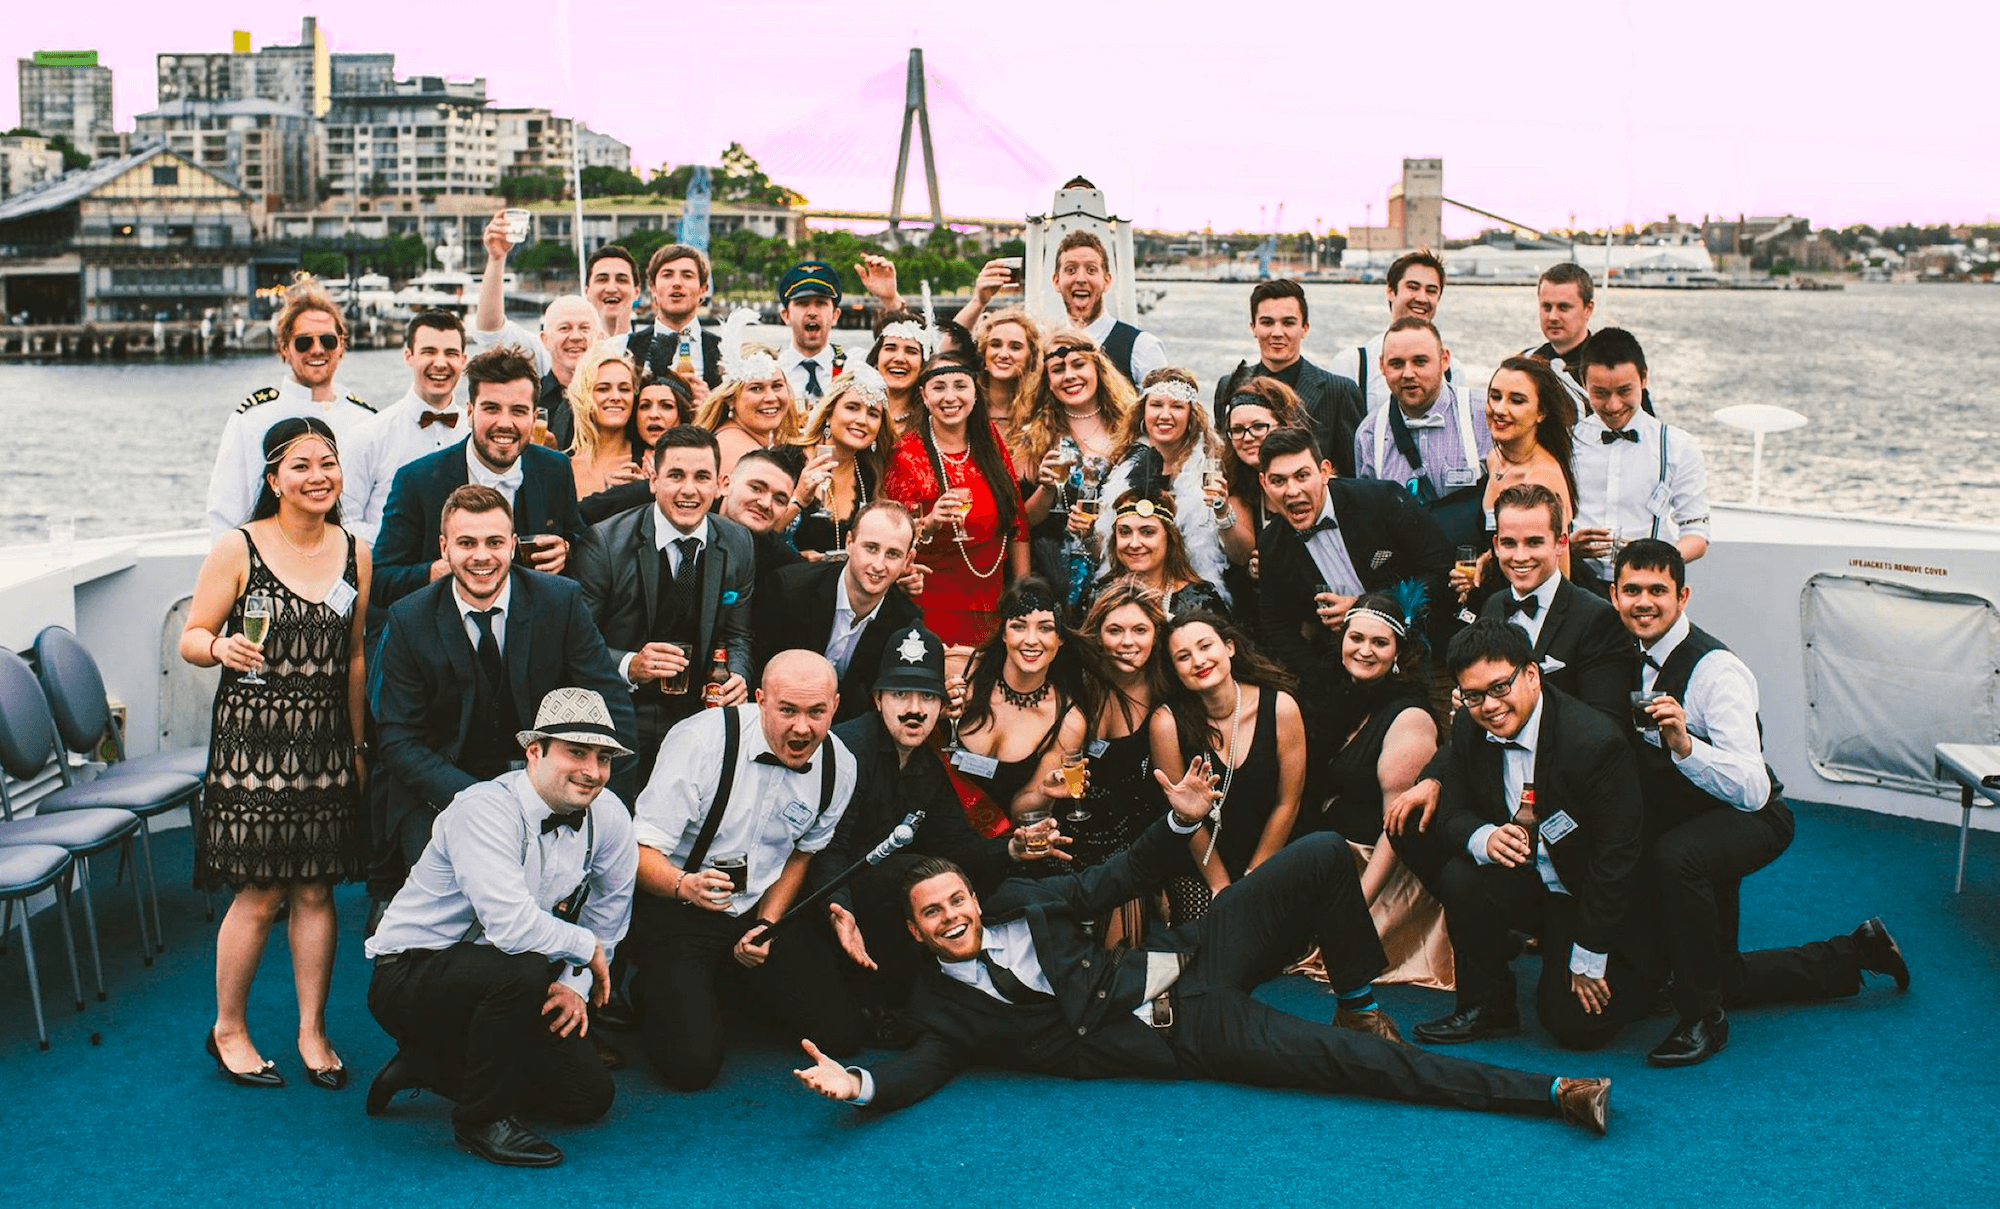 Group of people in dress up on a boat